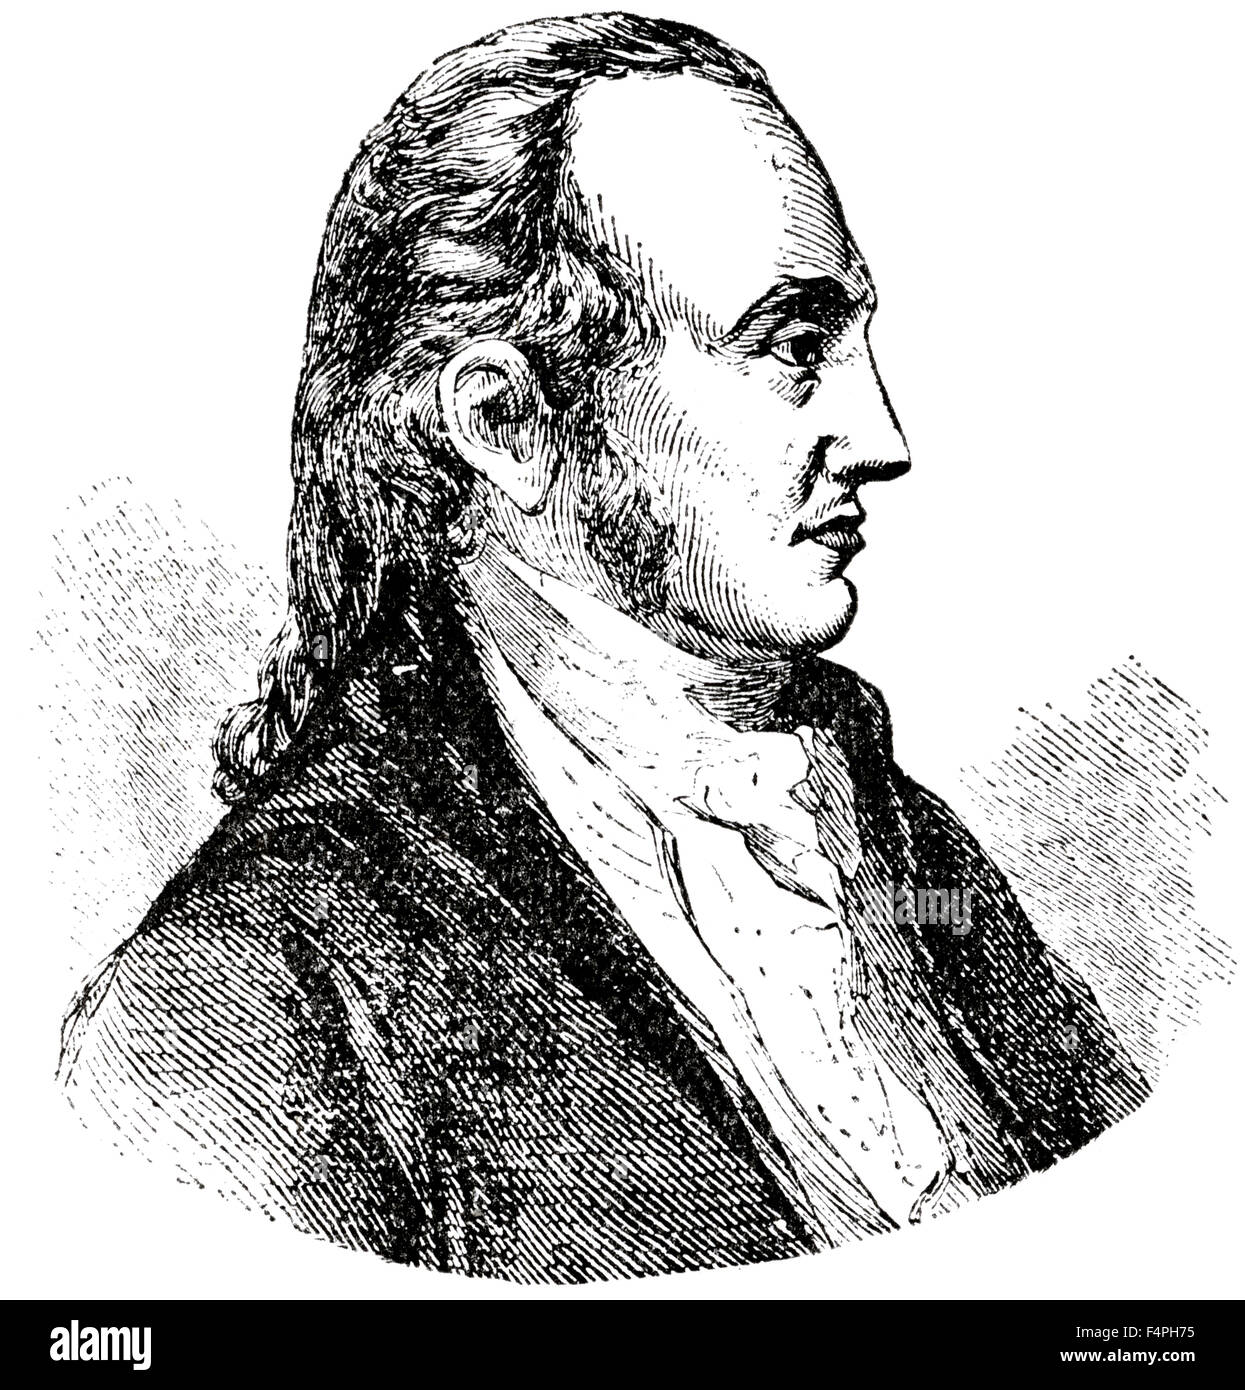 Aaron Burr (1756-1836), American Politician and 3rd Vice President, Engraving, 1889 - Stock Image